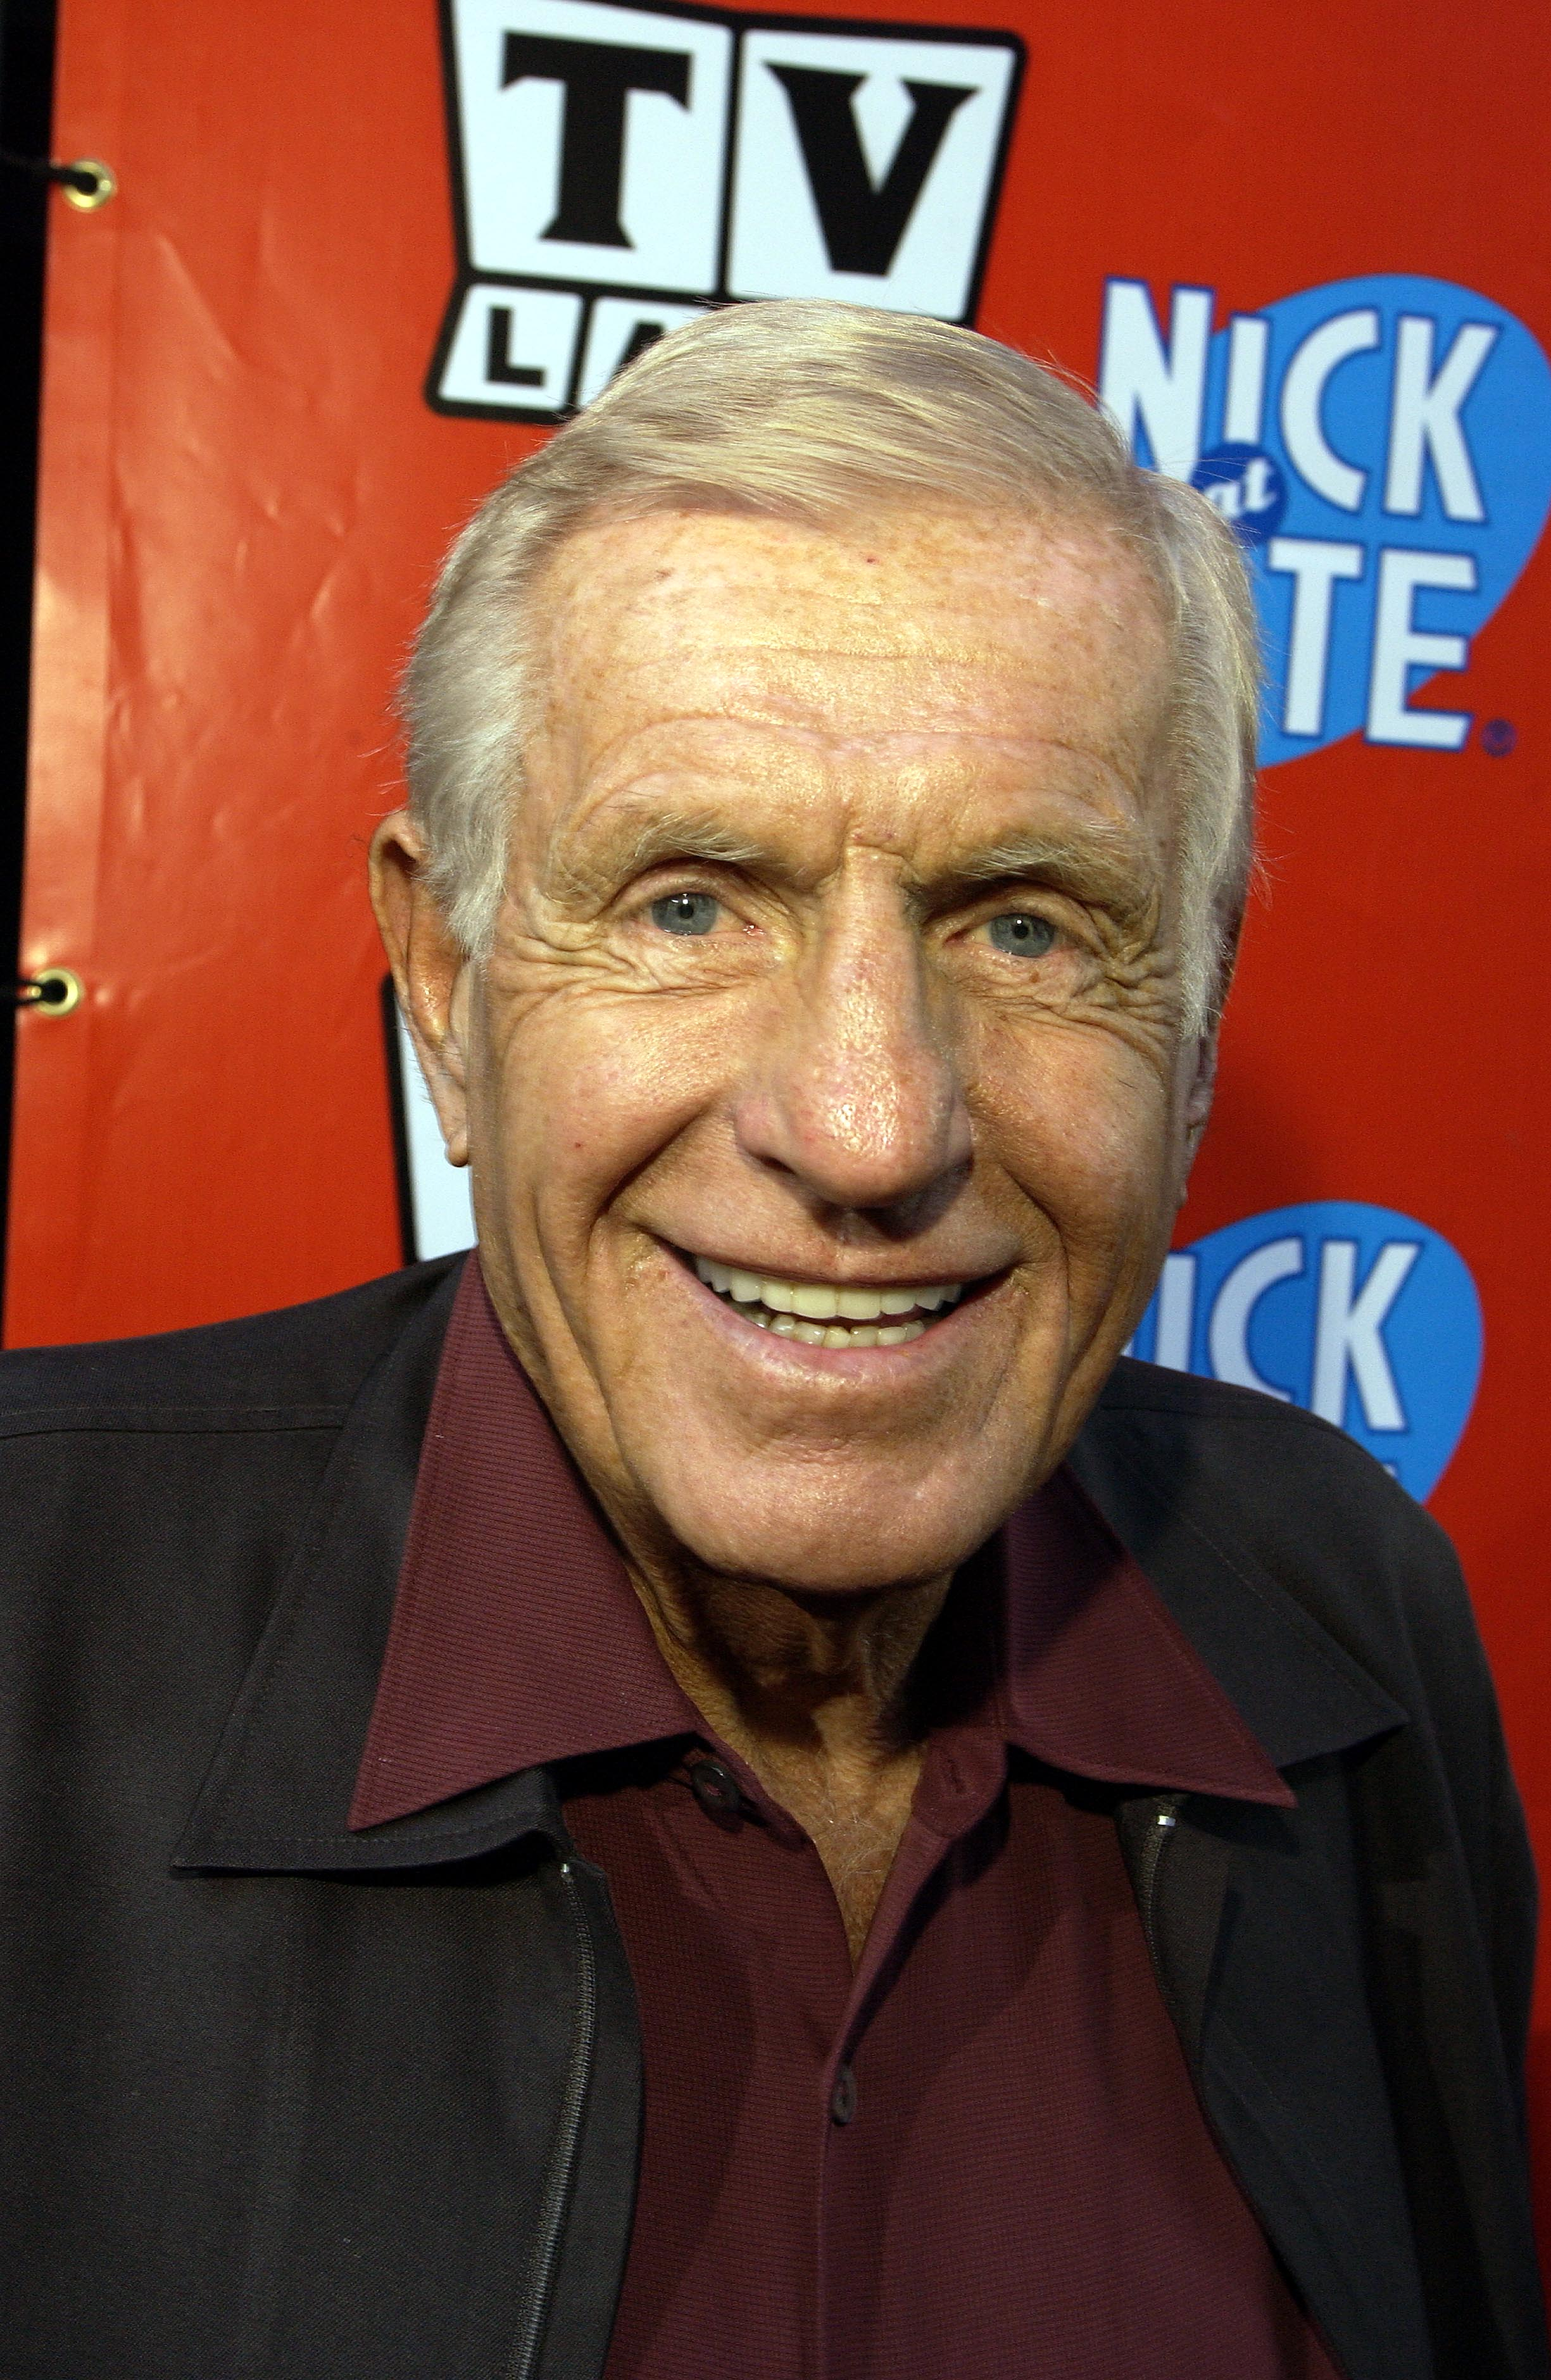 Jerry Van Dyke ,'Coach', at the TV Land and Nick at Nite Upfront in 'The Bat Cave' on Broadway in New York City on April 24, 2002. photo by Gabe Palacio/ImageDirect